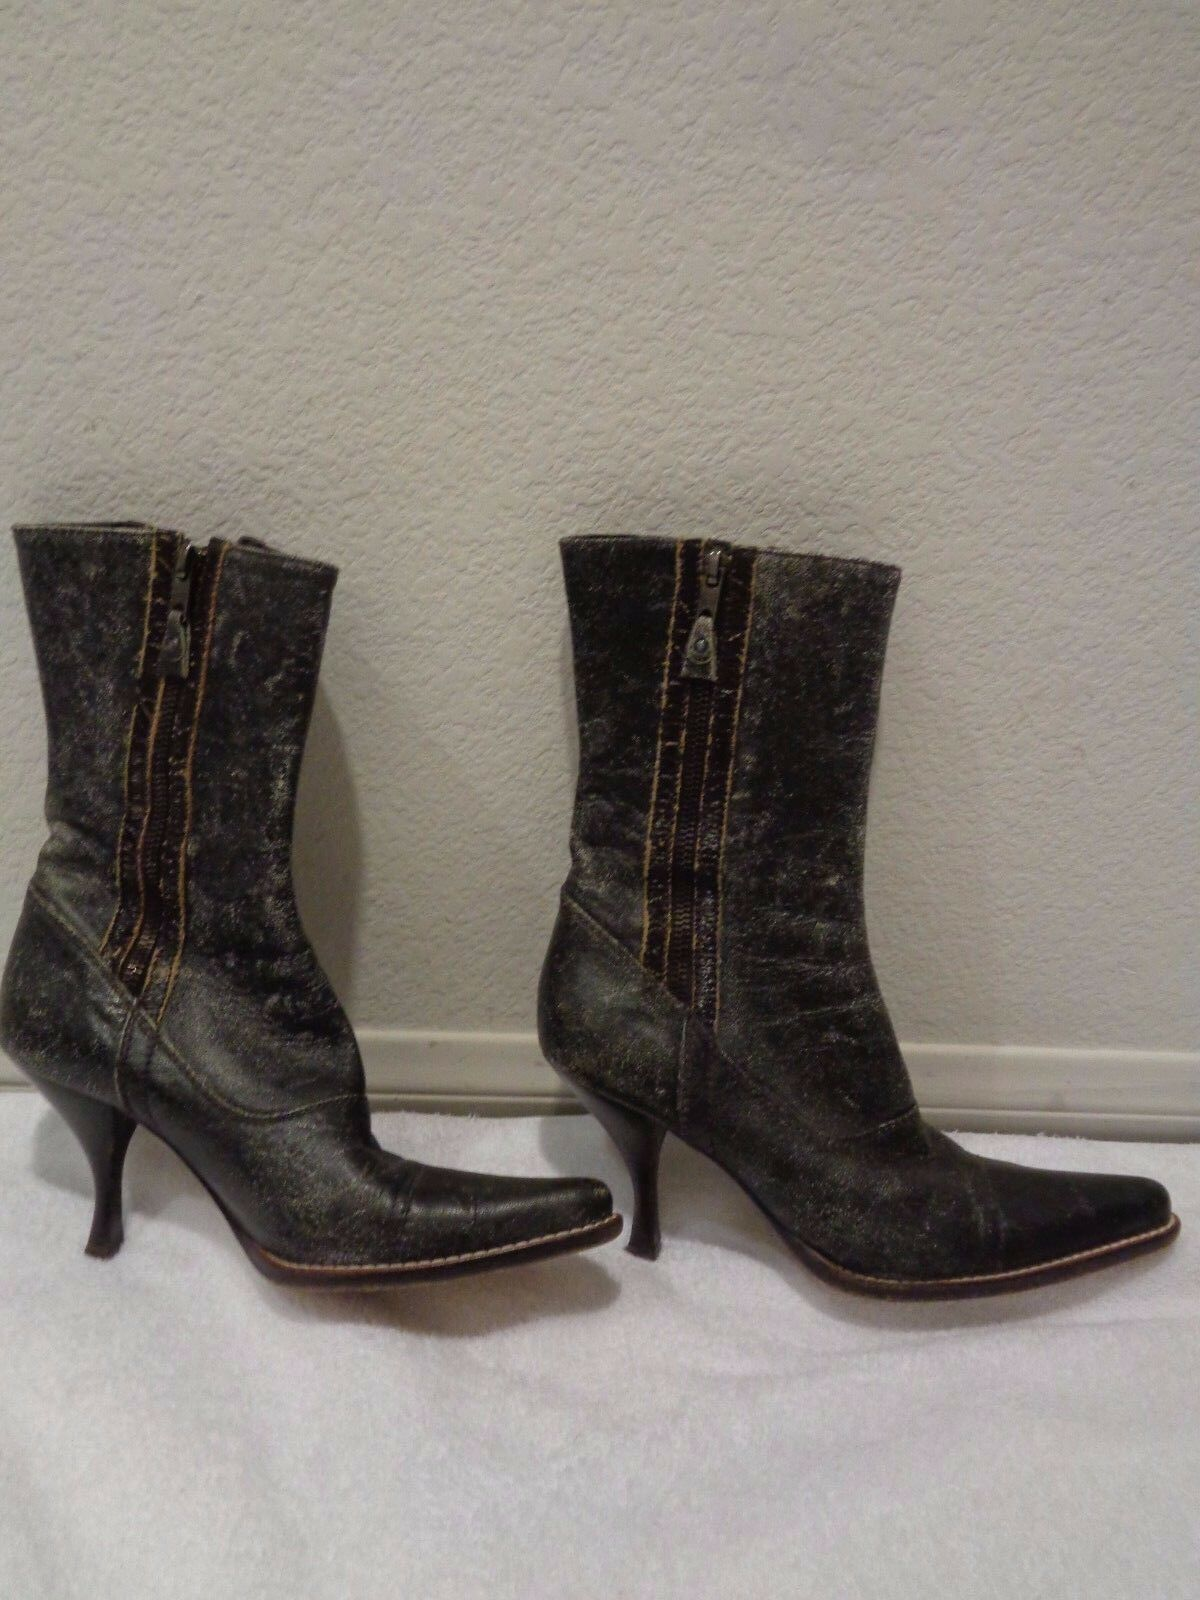 Mui Mui brown distressed ankle tall Boots SZ 36.5 6.5